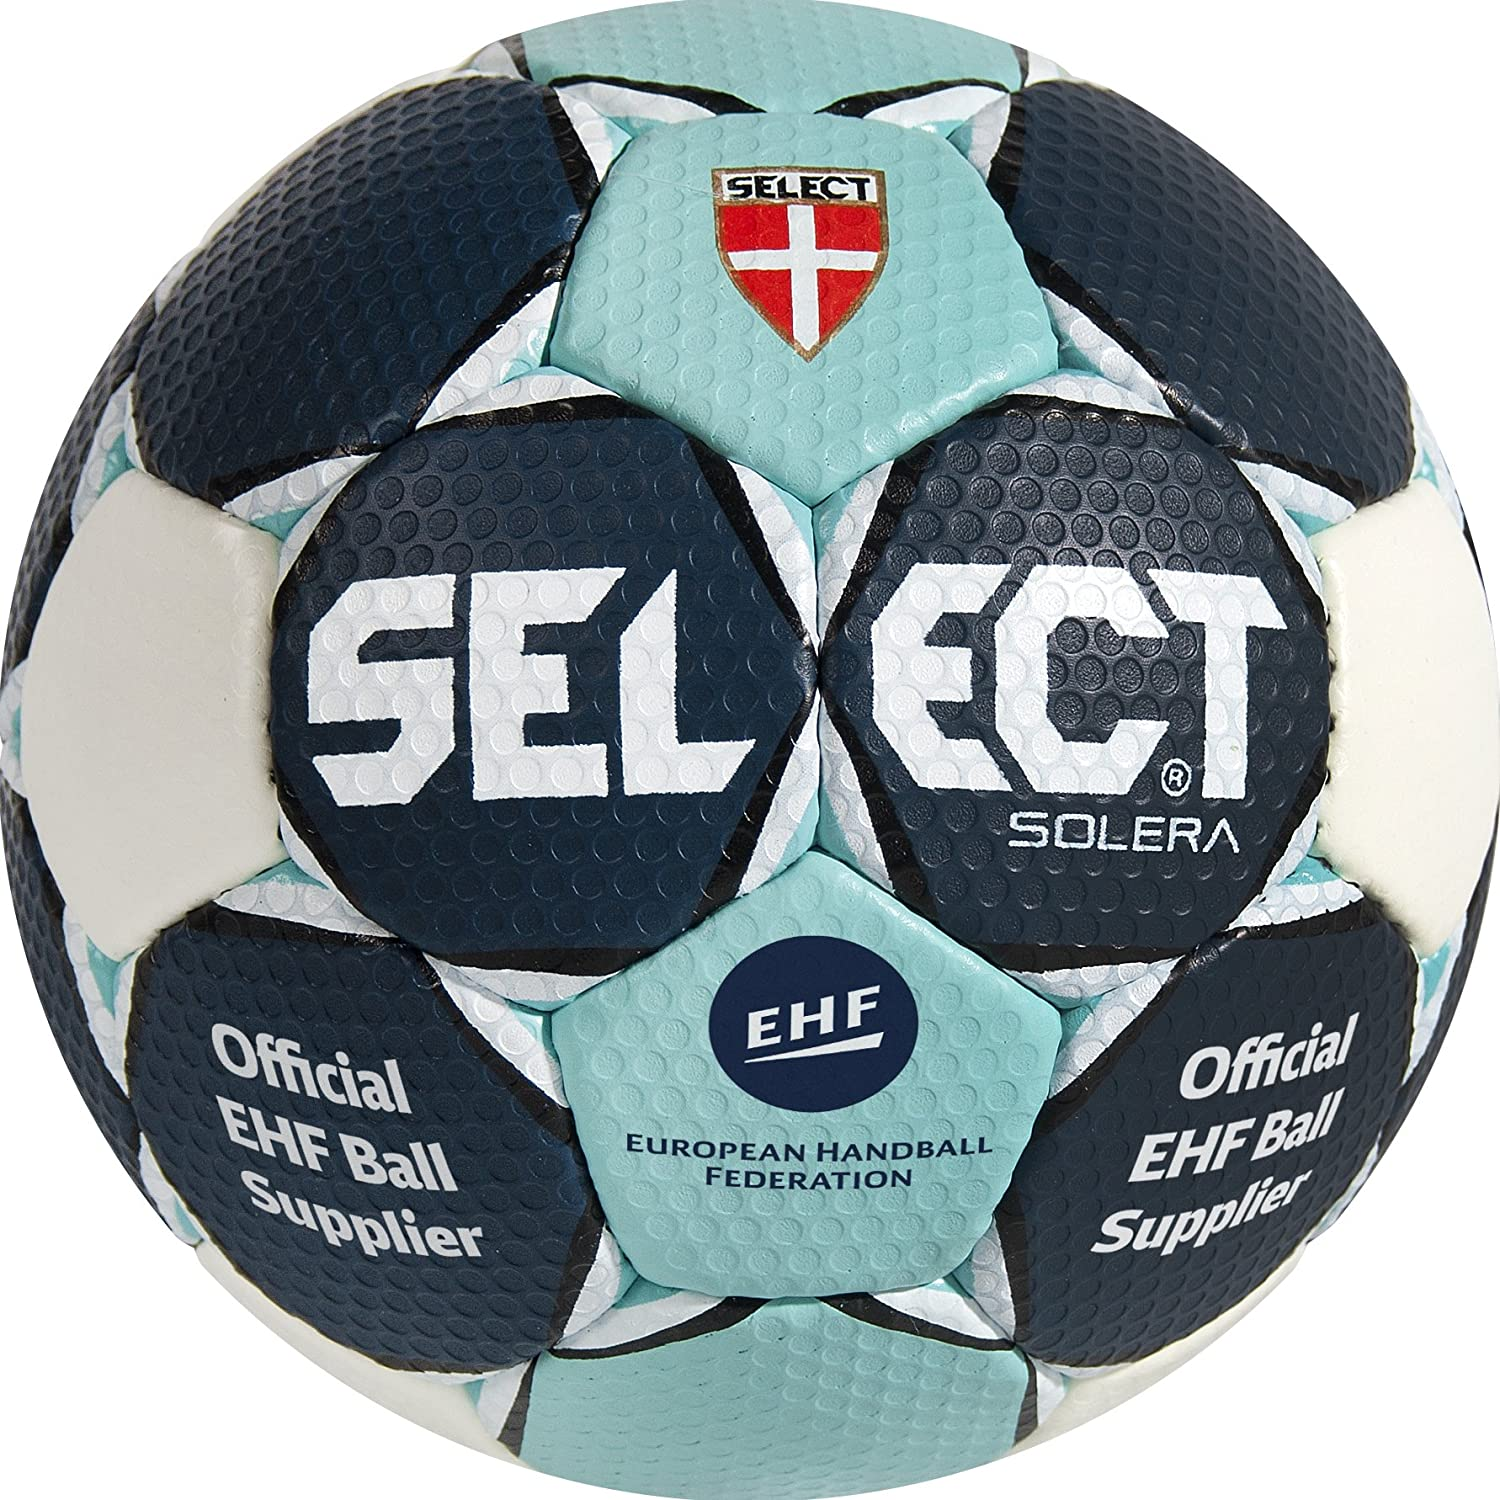 Select de Balonmano Solera, Colour Azul/Blanco, 0, 1630847220 ...